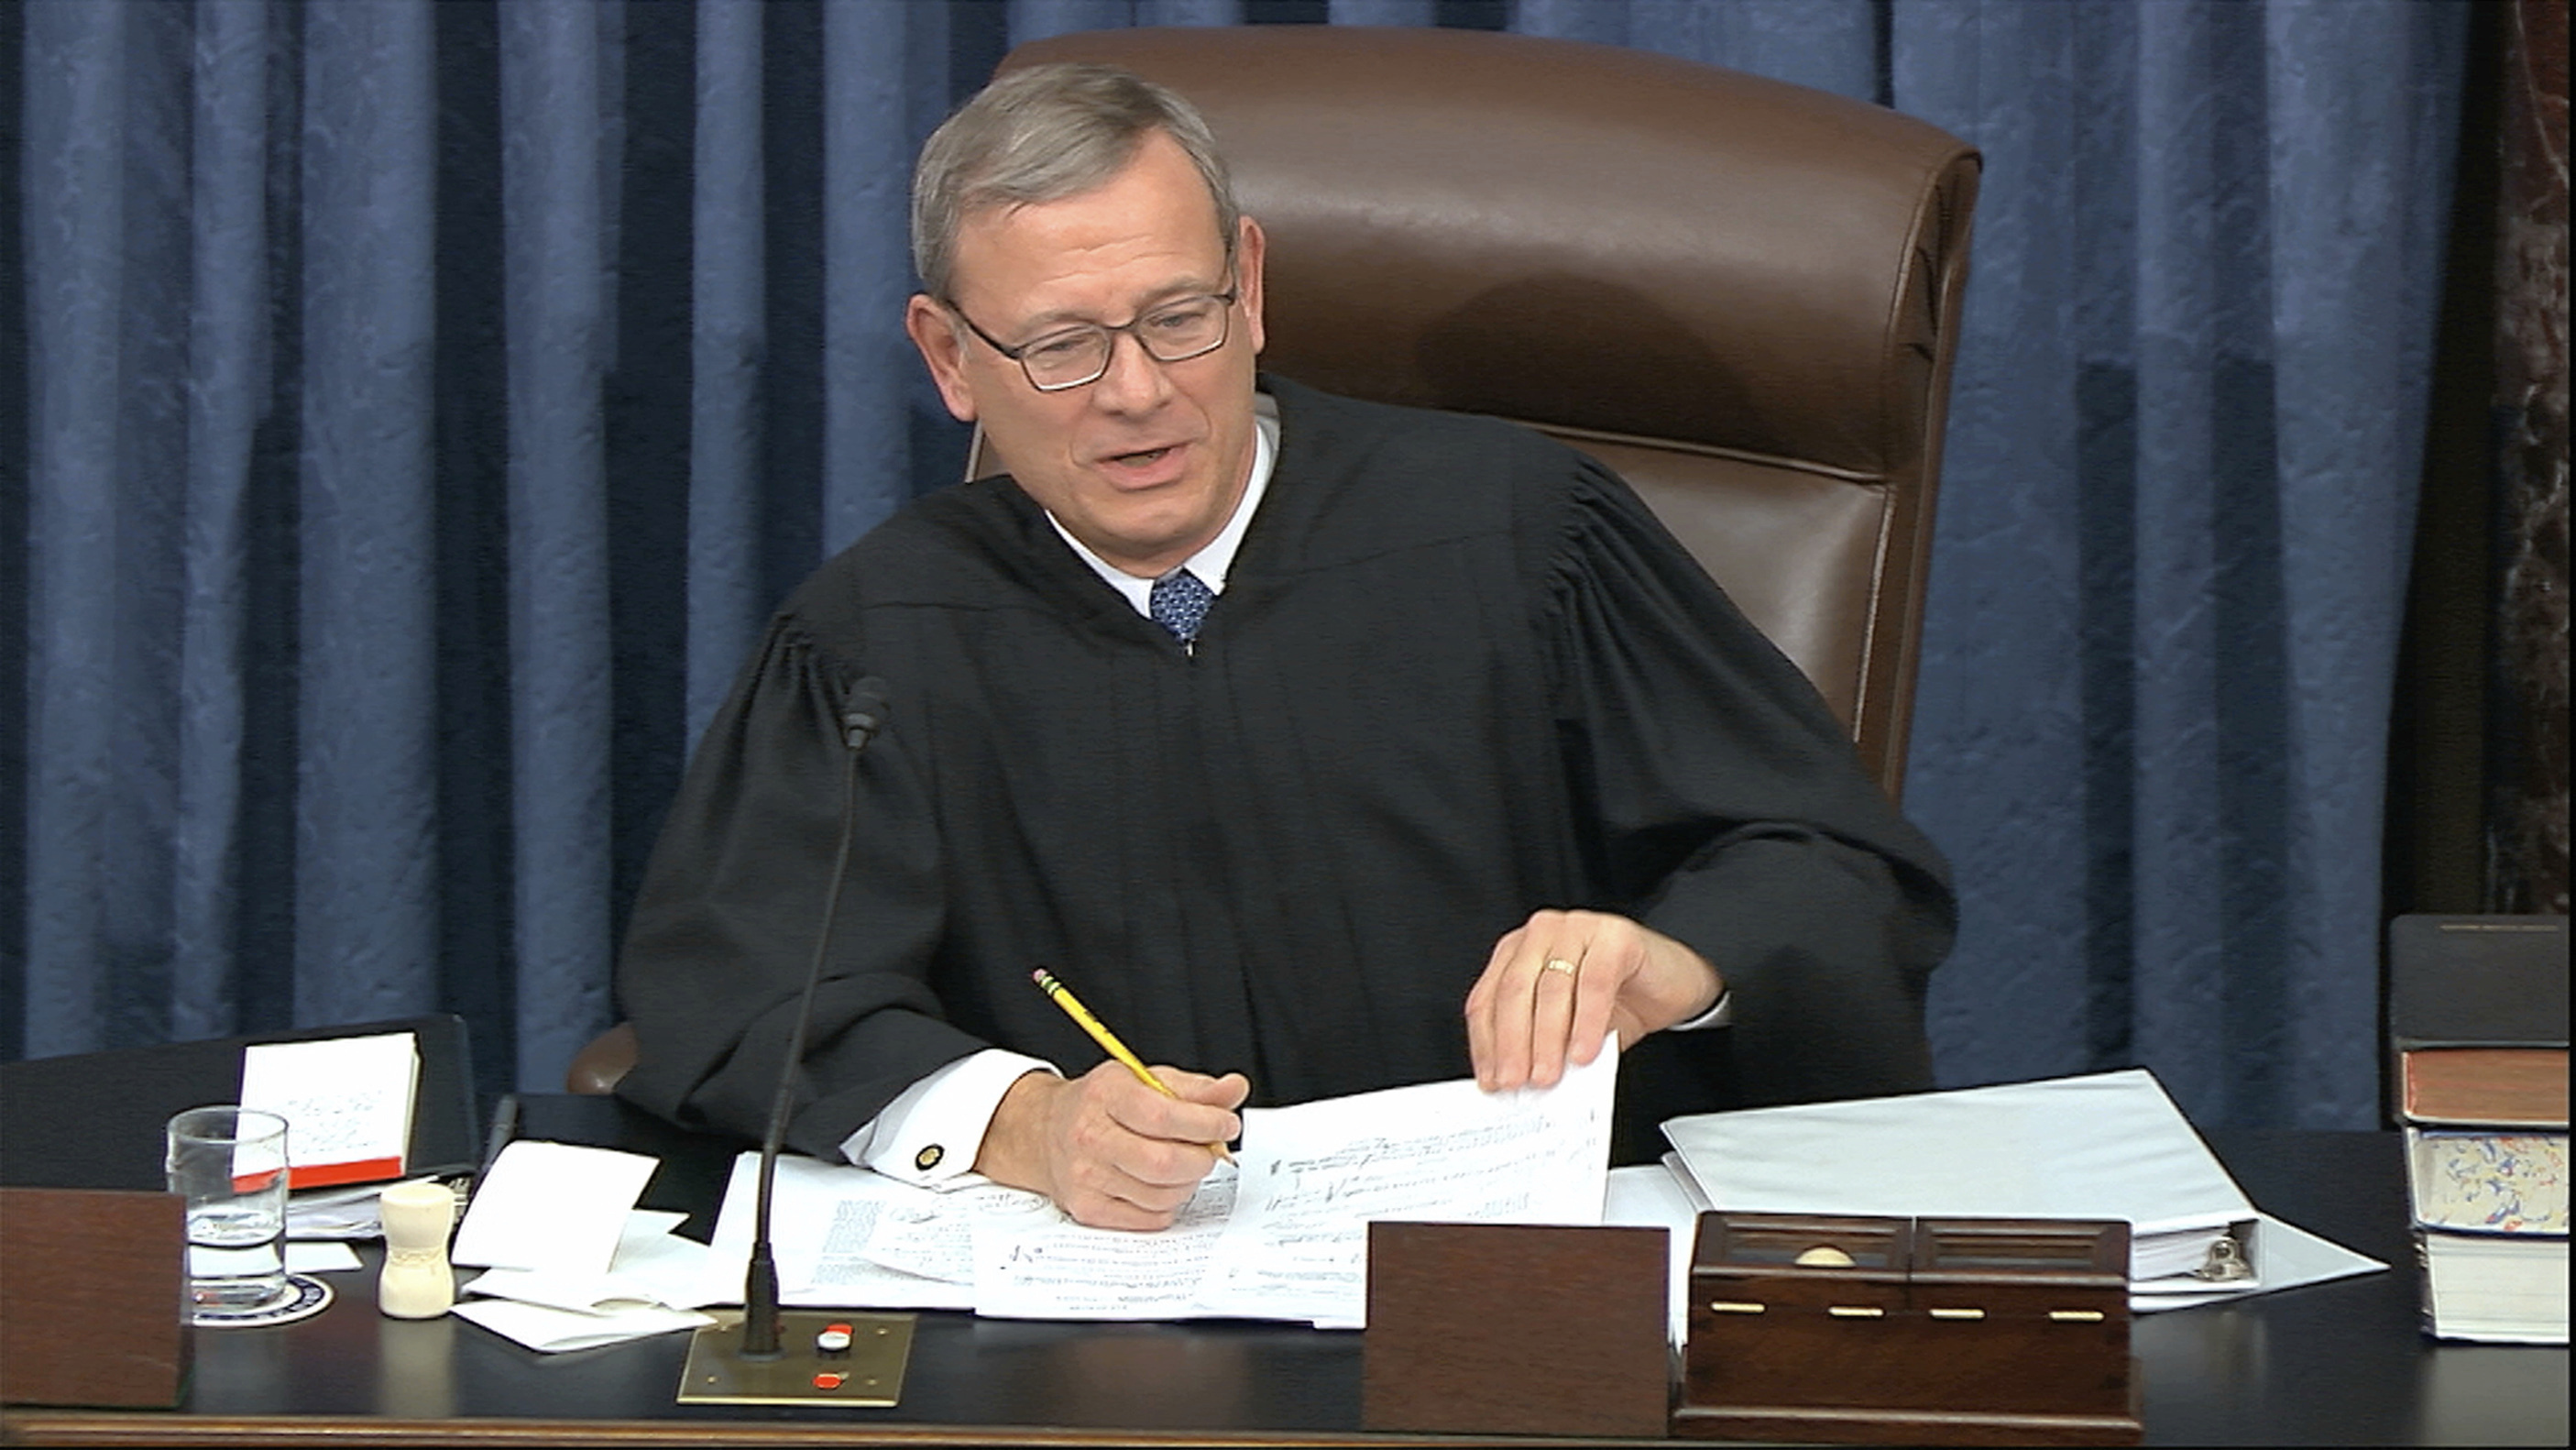 Chief Justice Roberts admonishes during Senate trial: Both sides 'should remember where they are'